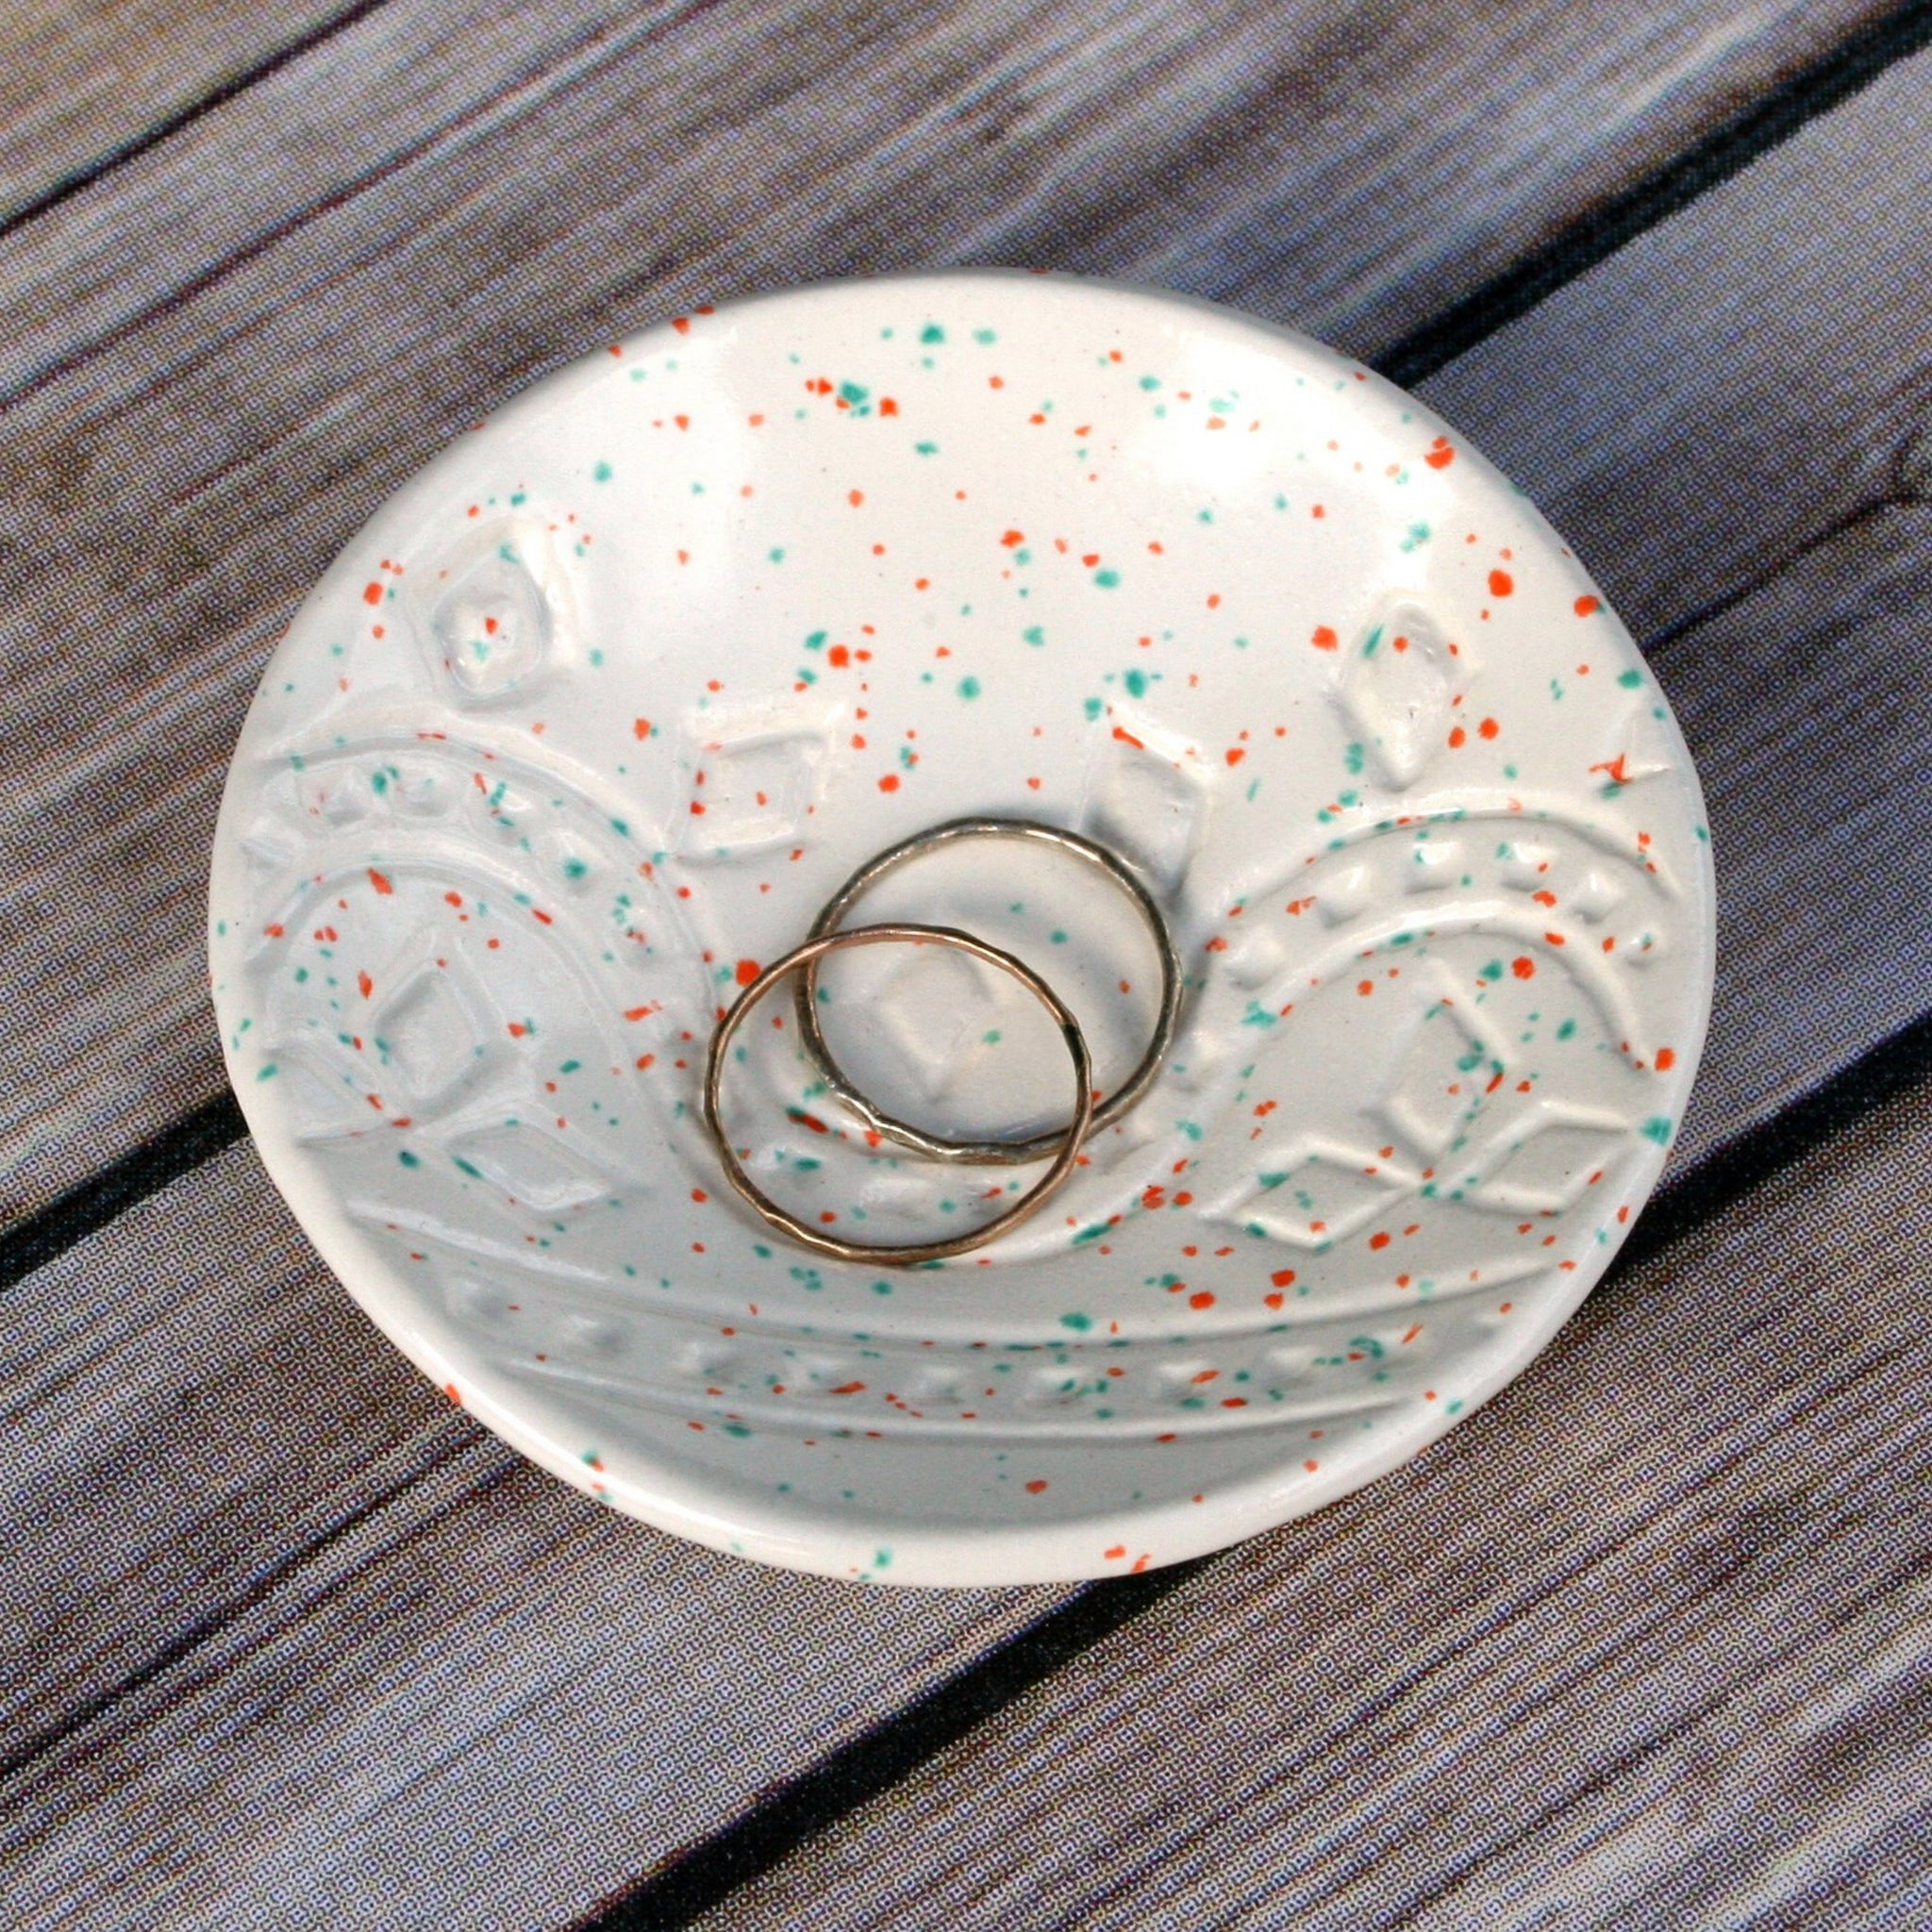 Speckled White Ring Dish - Confetti glaze